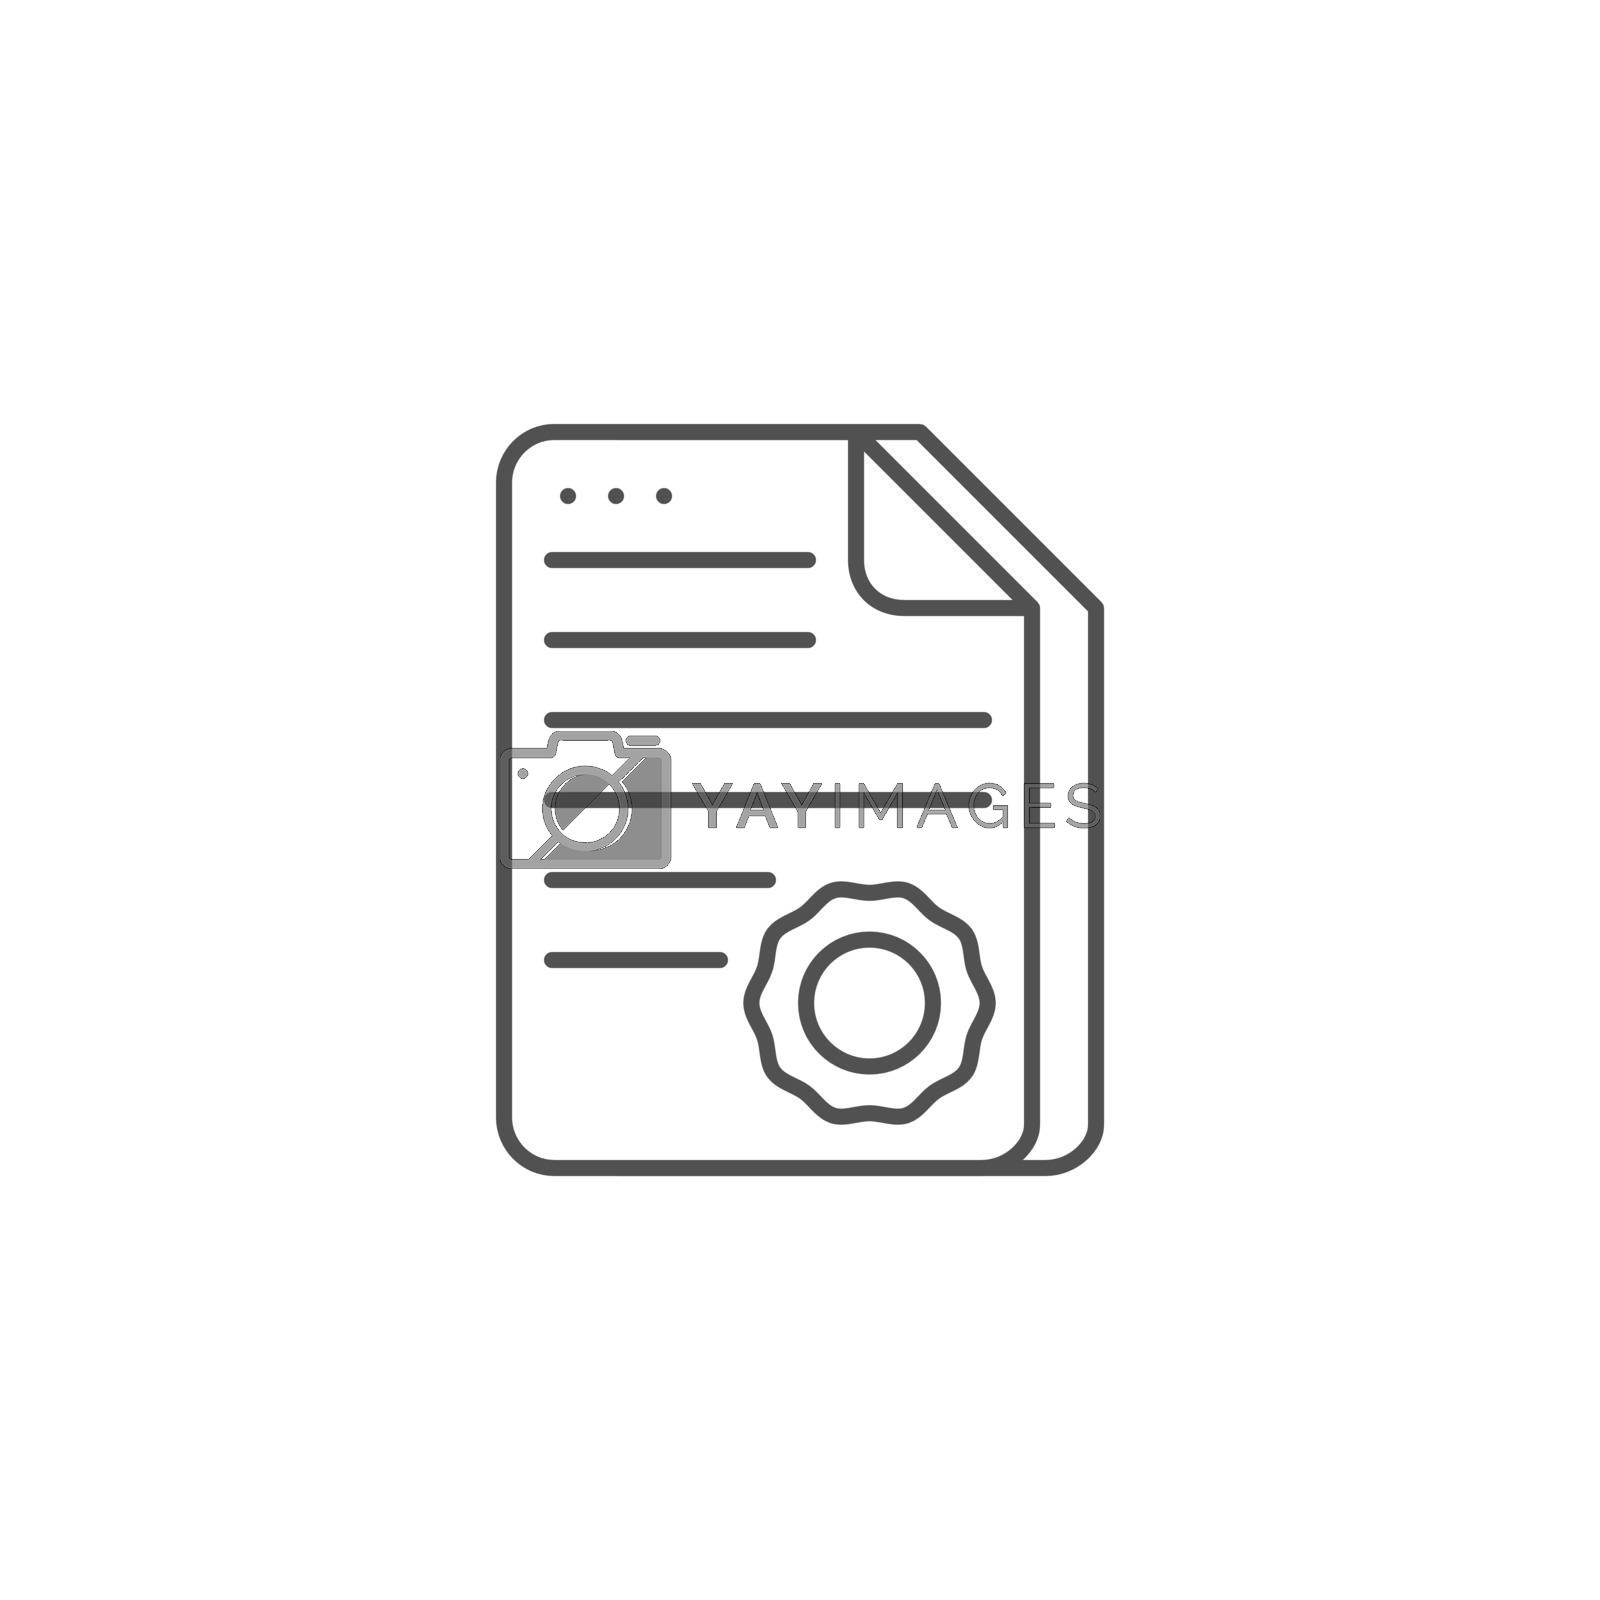 Certificate Related Vector Line Icon by smoki